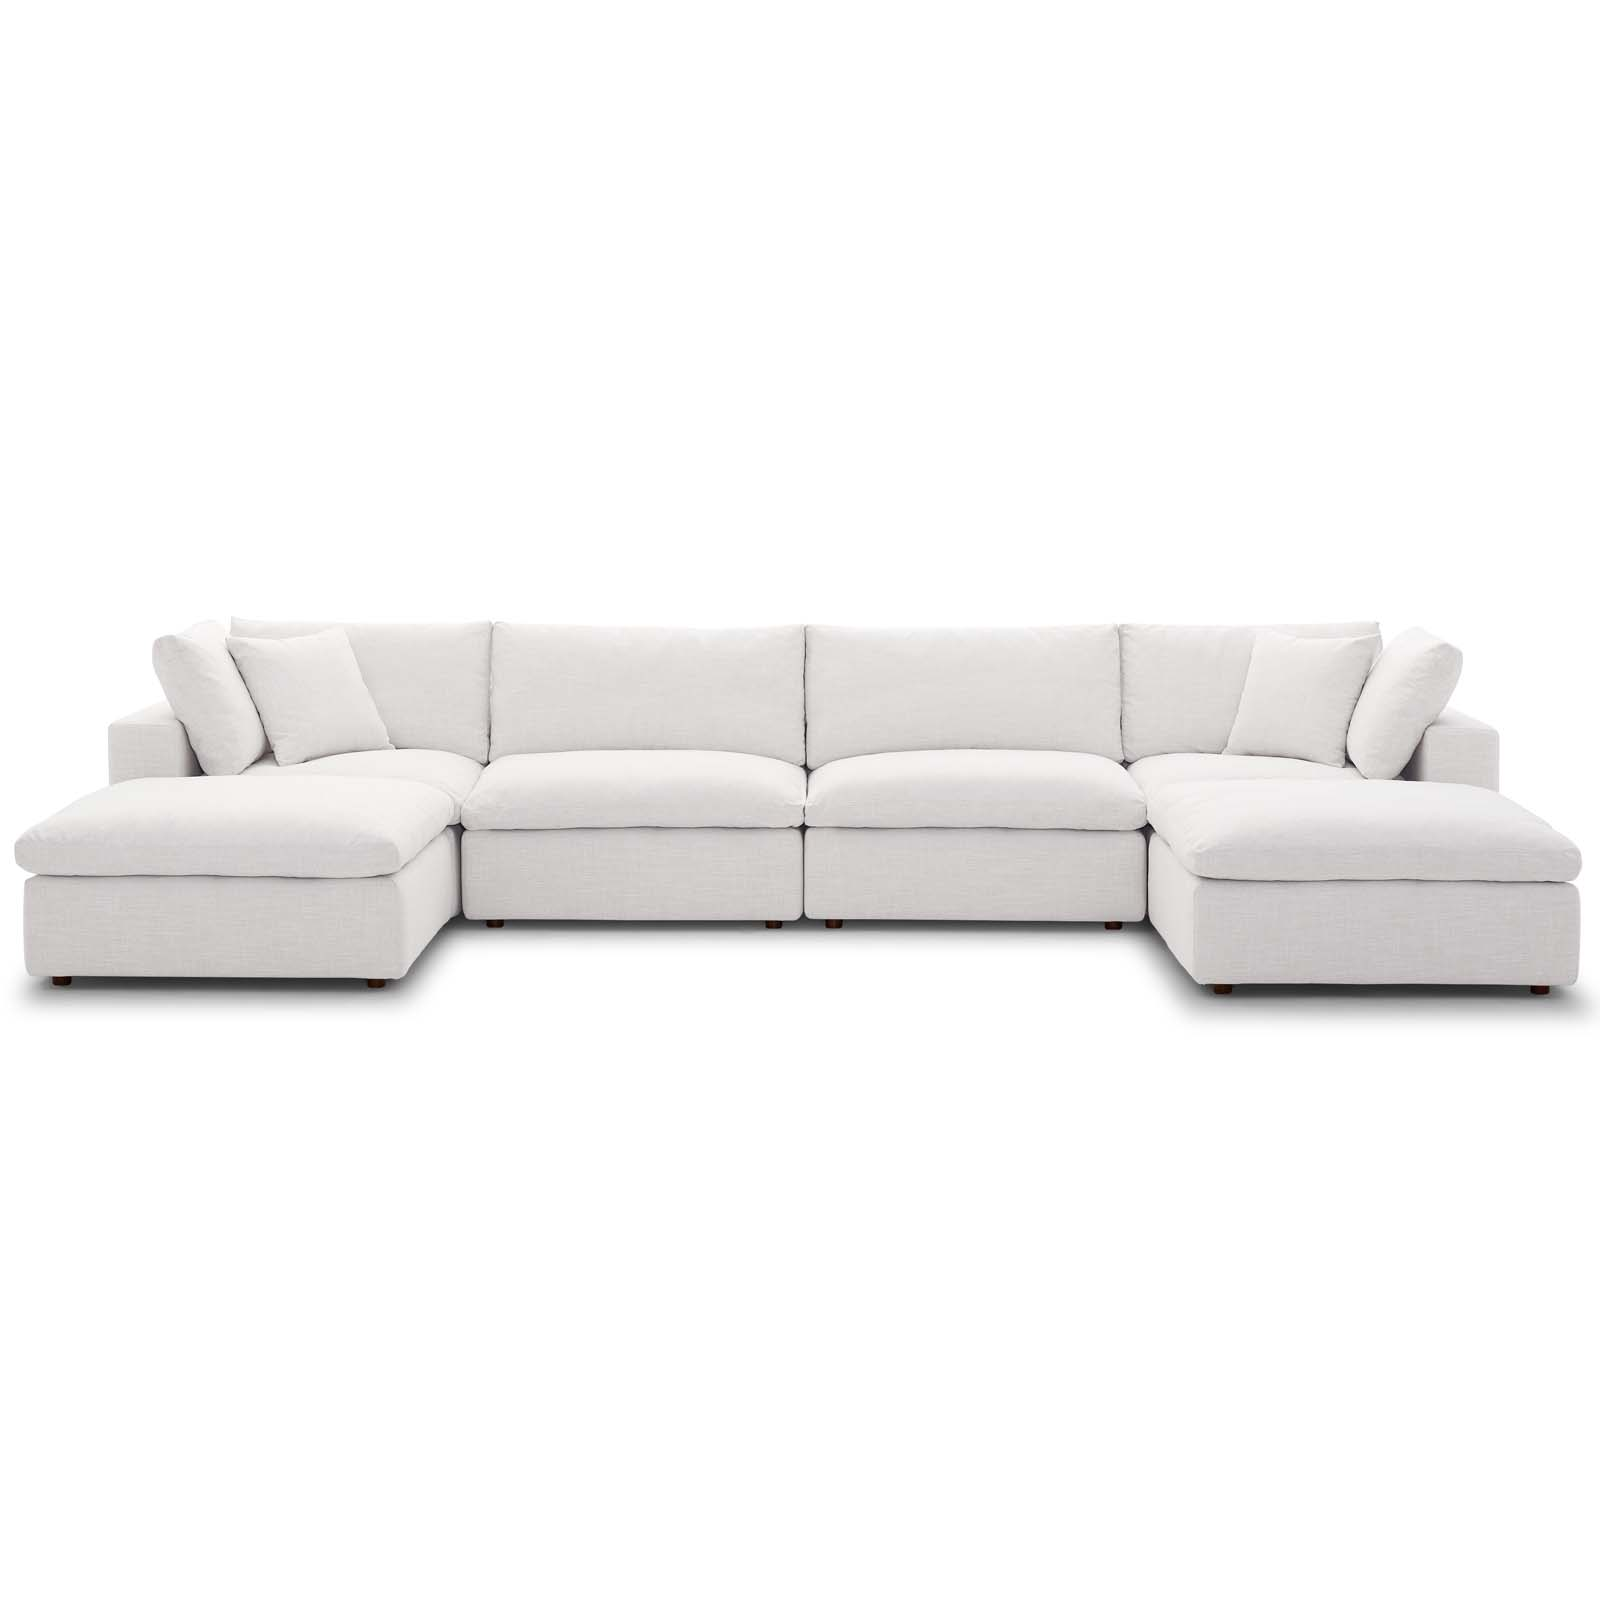 Picture of: Commix Down Filled Overstuffed 6 Piece Sectional Sofa Set Beige